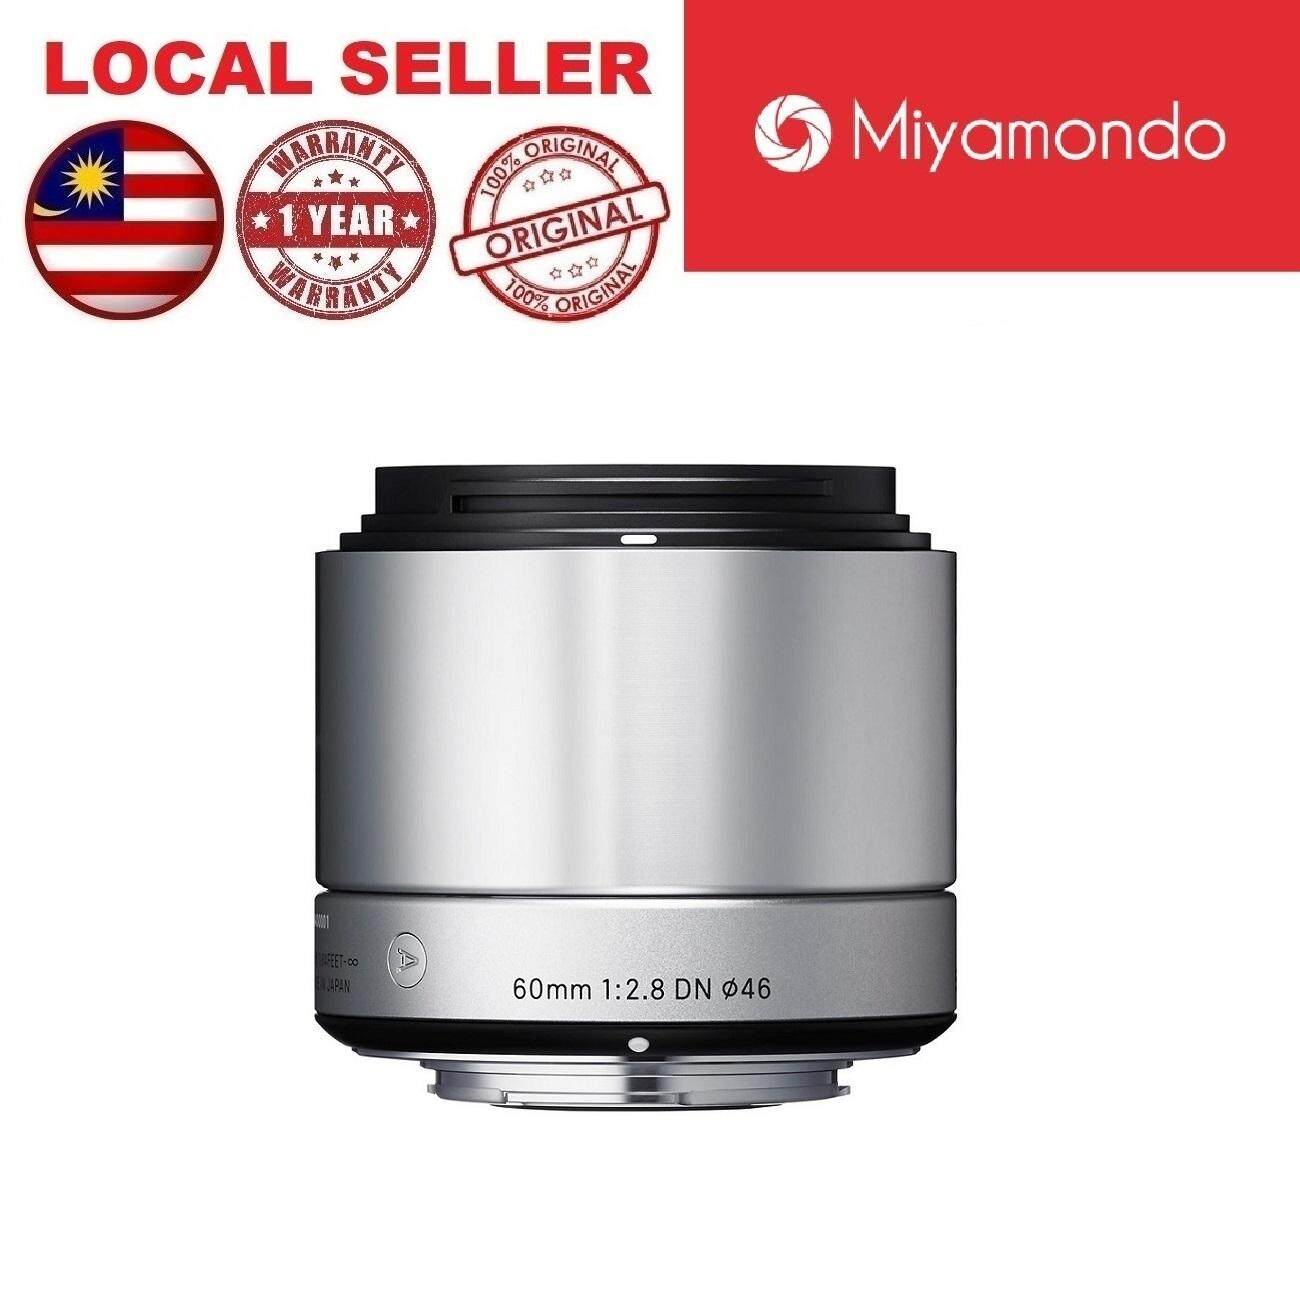 Sigma Lenses For The Best Price In Malaysia 3rd Brand Nikon Lens Cap Modern 62mm Highest Quality 60mm F 28 Dn Art Olympus Micro Four Third Silver